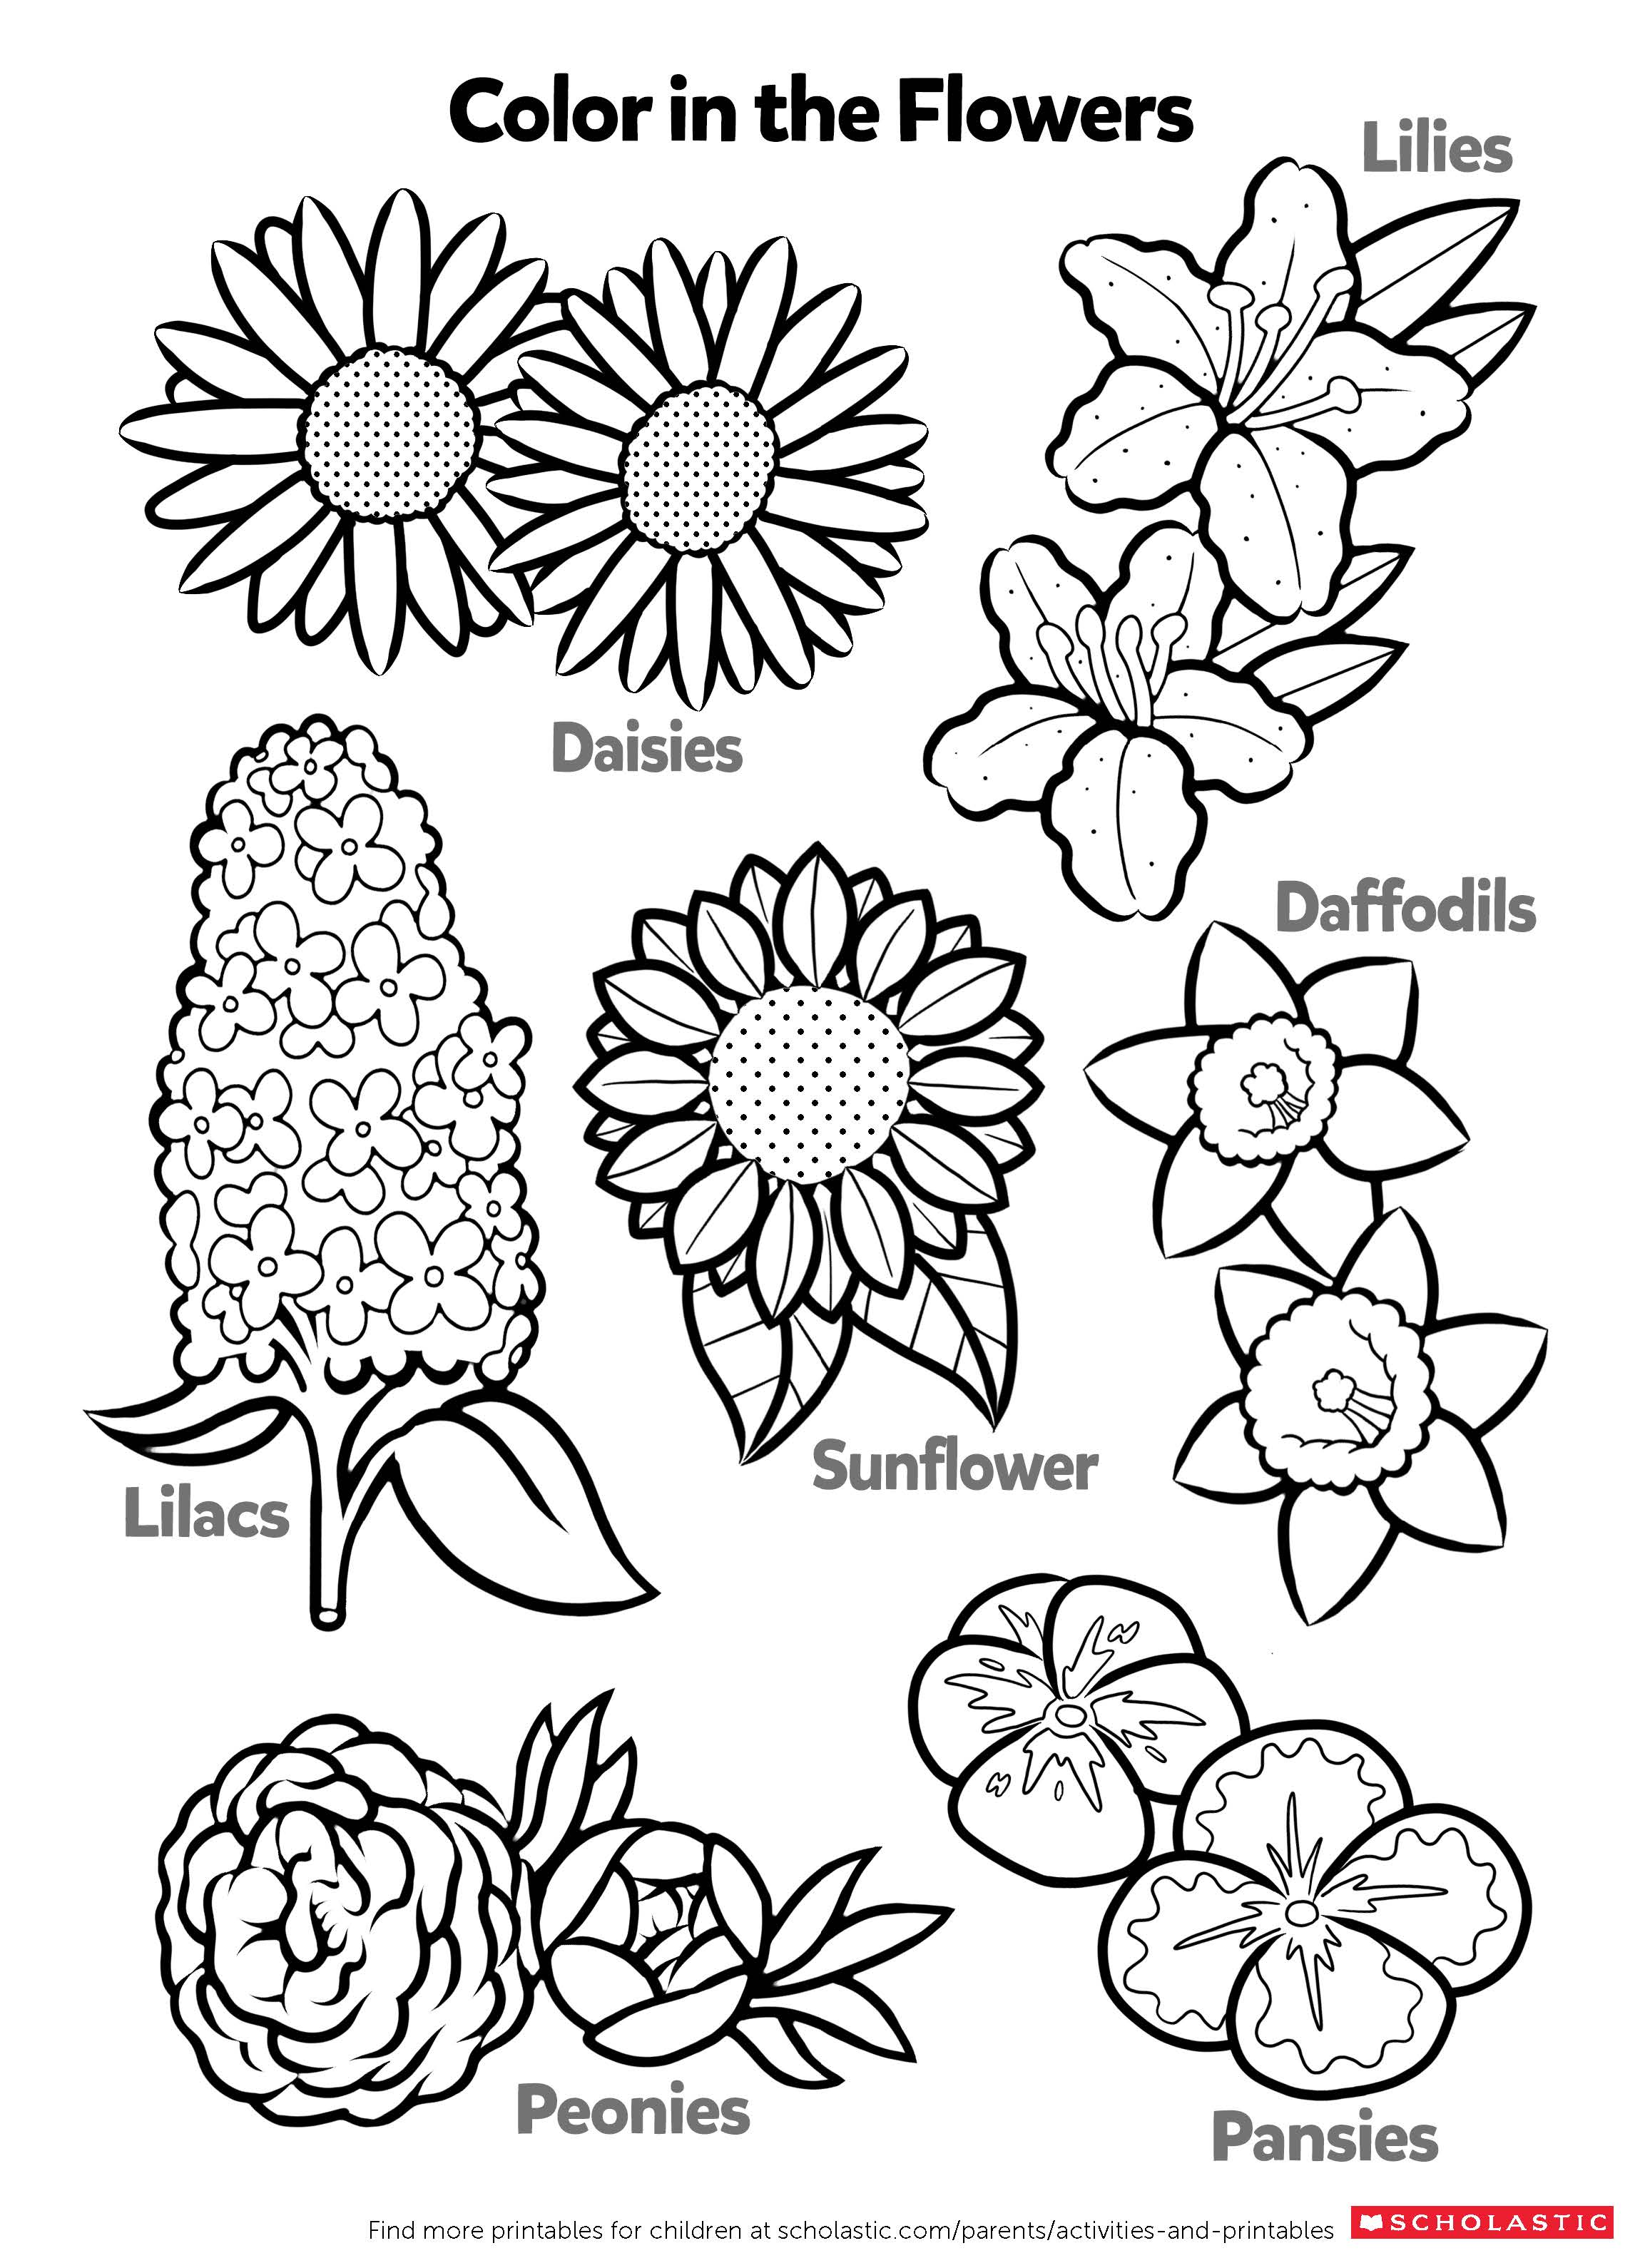 Seputarberitaduniakita Coloring Worksheets For Kids